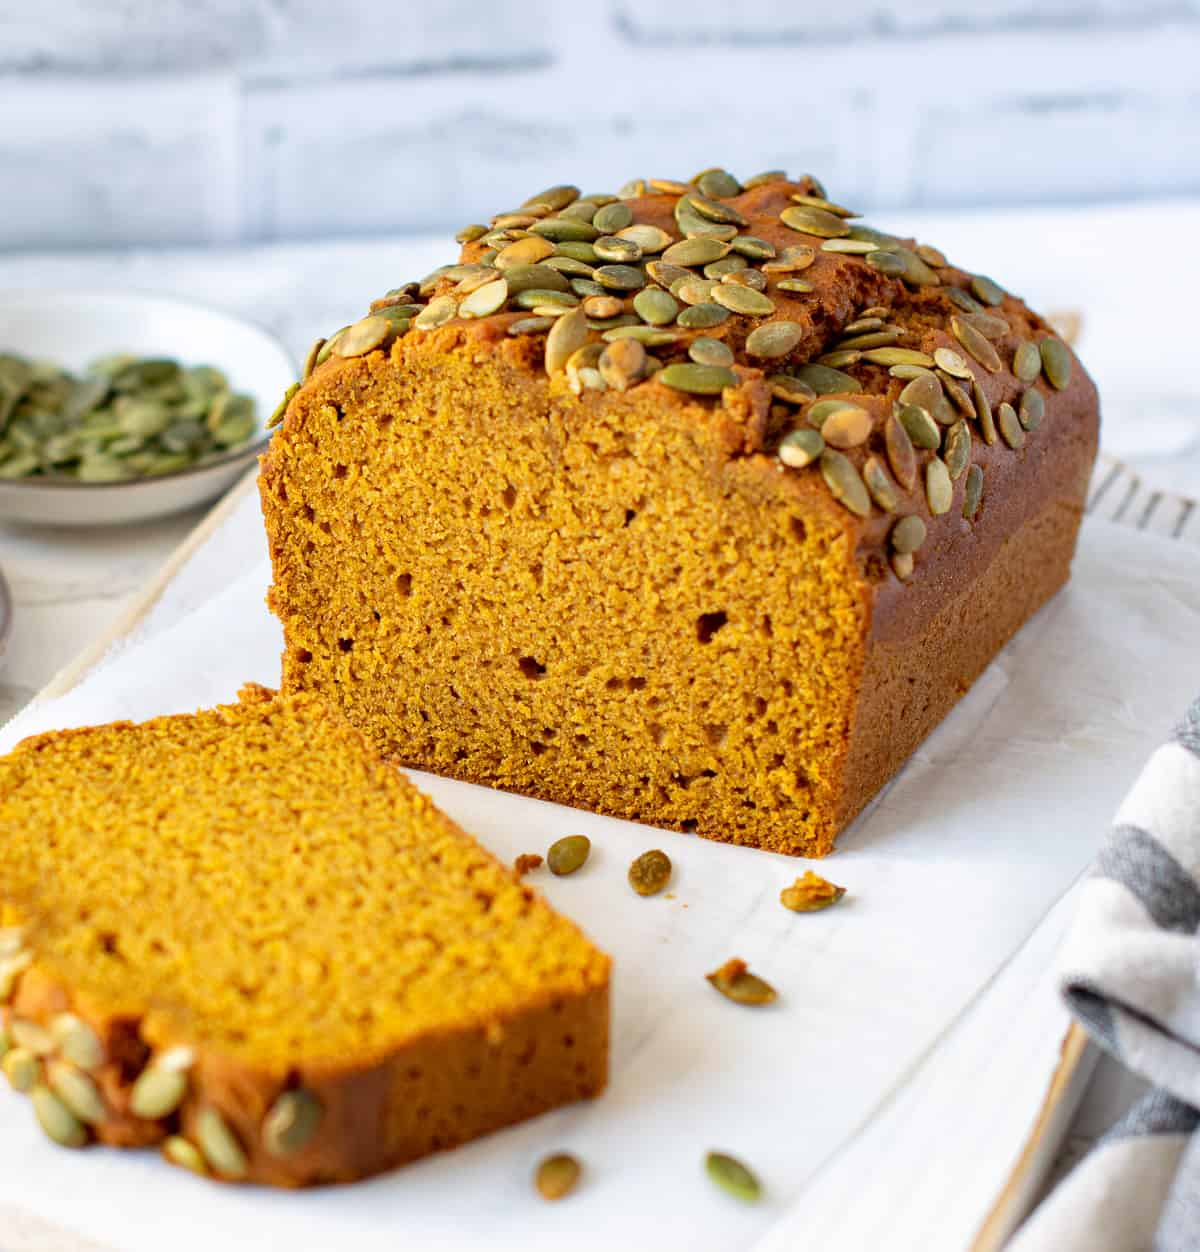 Vegan Pumpkin Bread served on a white board with pumpkin seeds on the side.